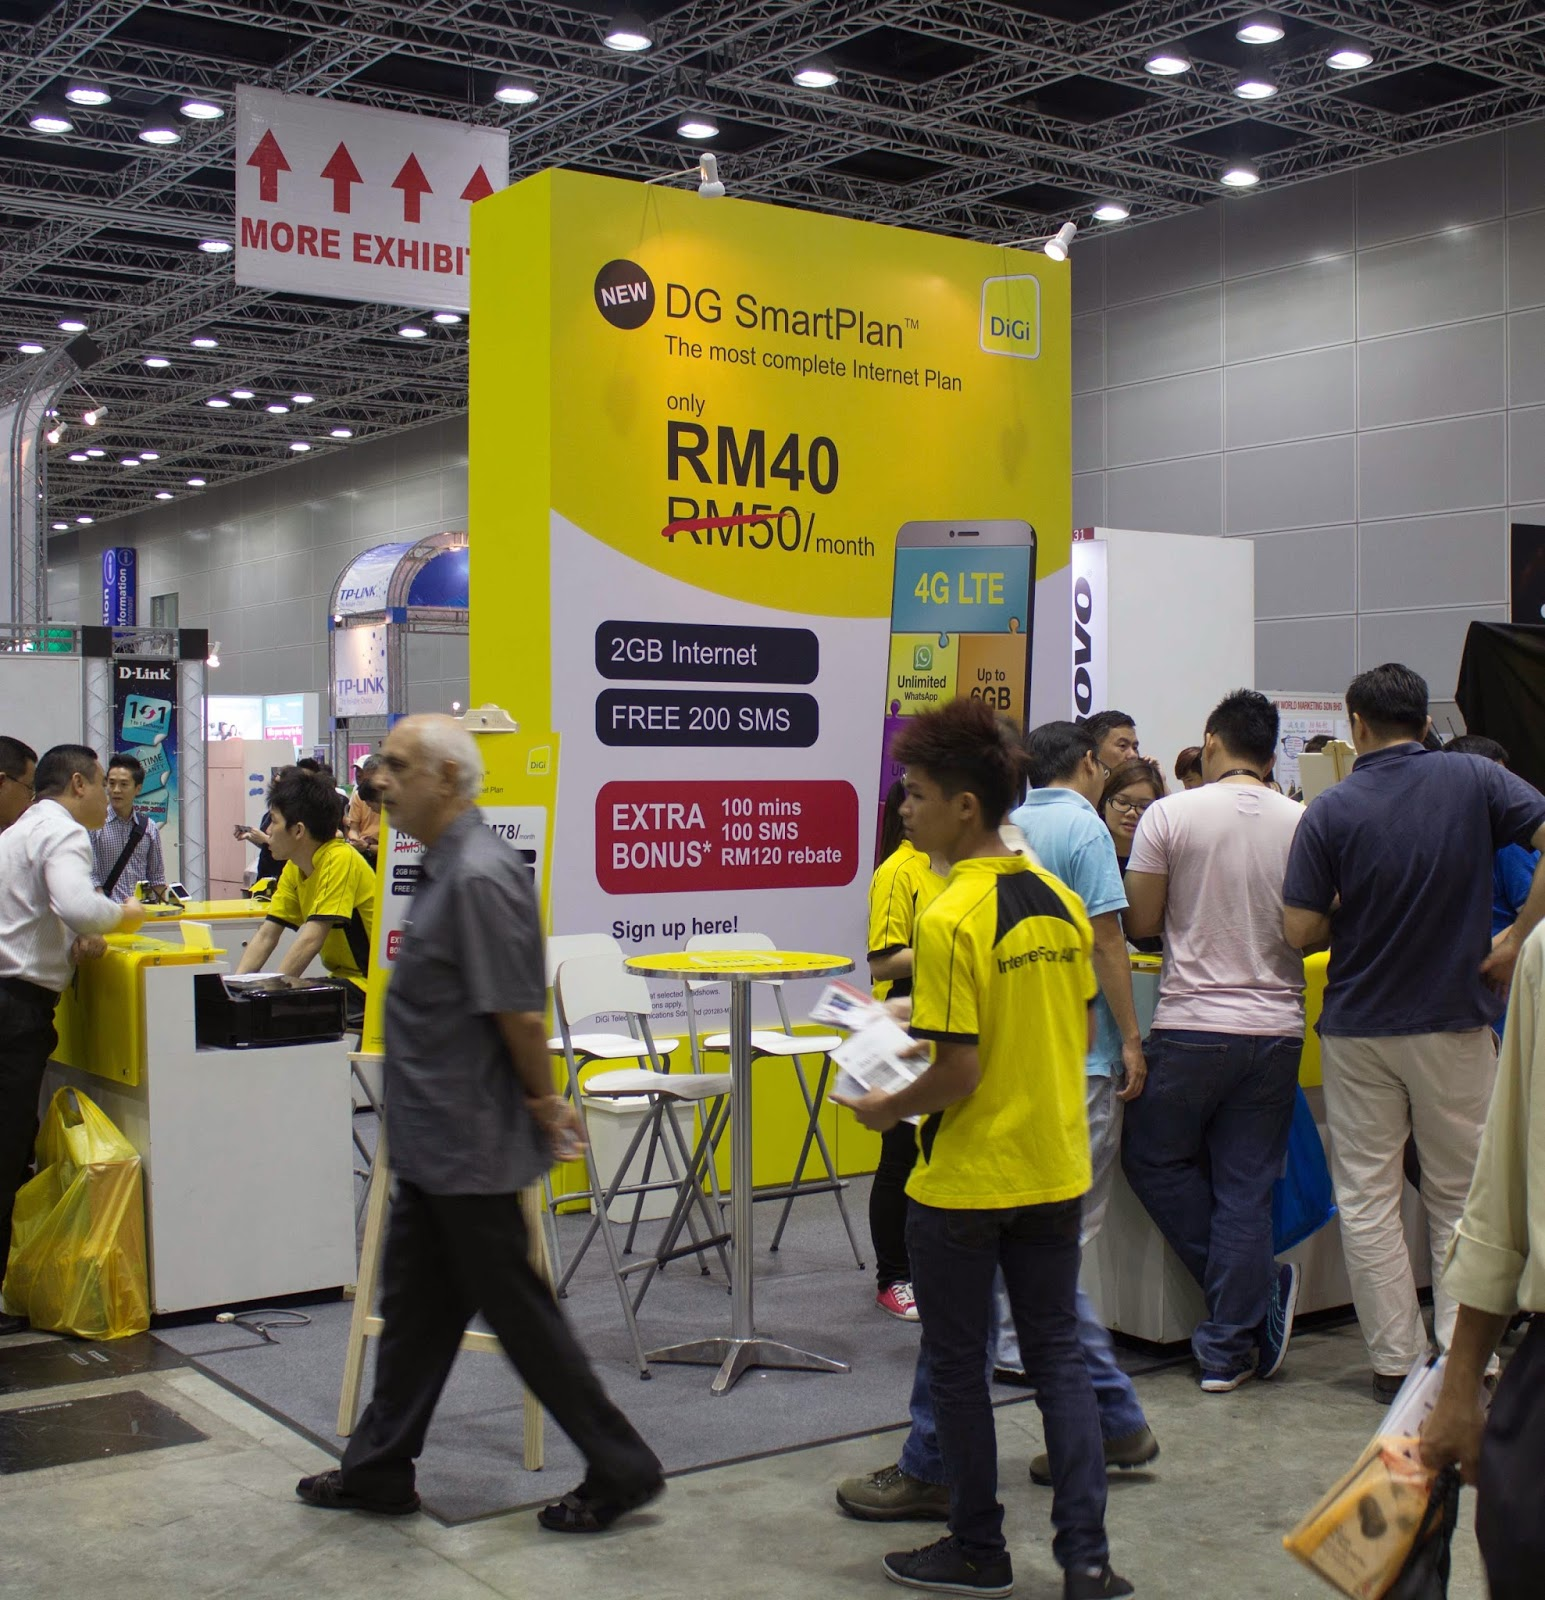 Coverage of PIKOM PC Fair 2014 @ Kuala Lumpur Convention Center 395